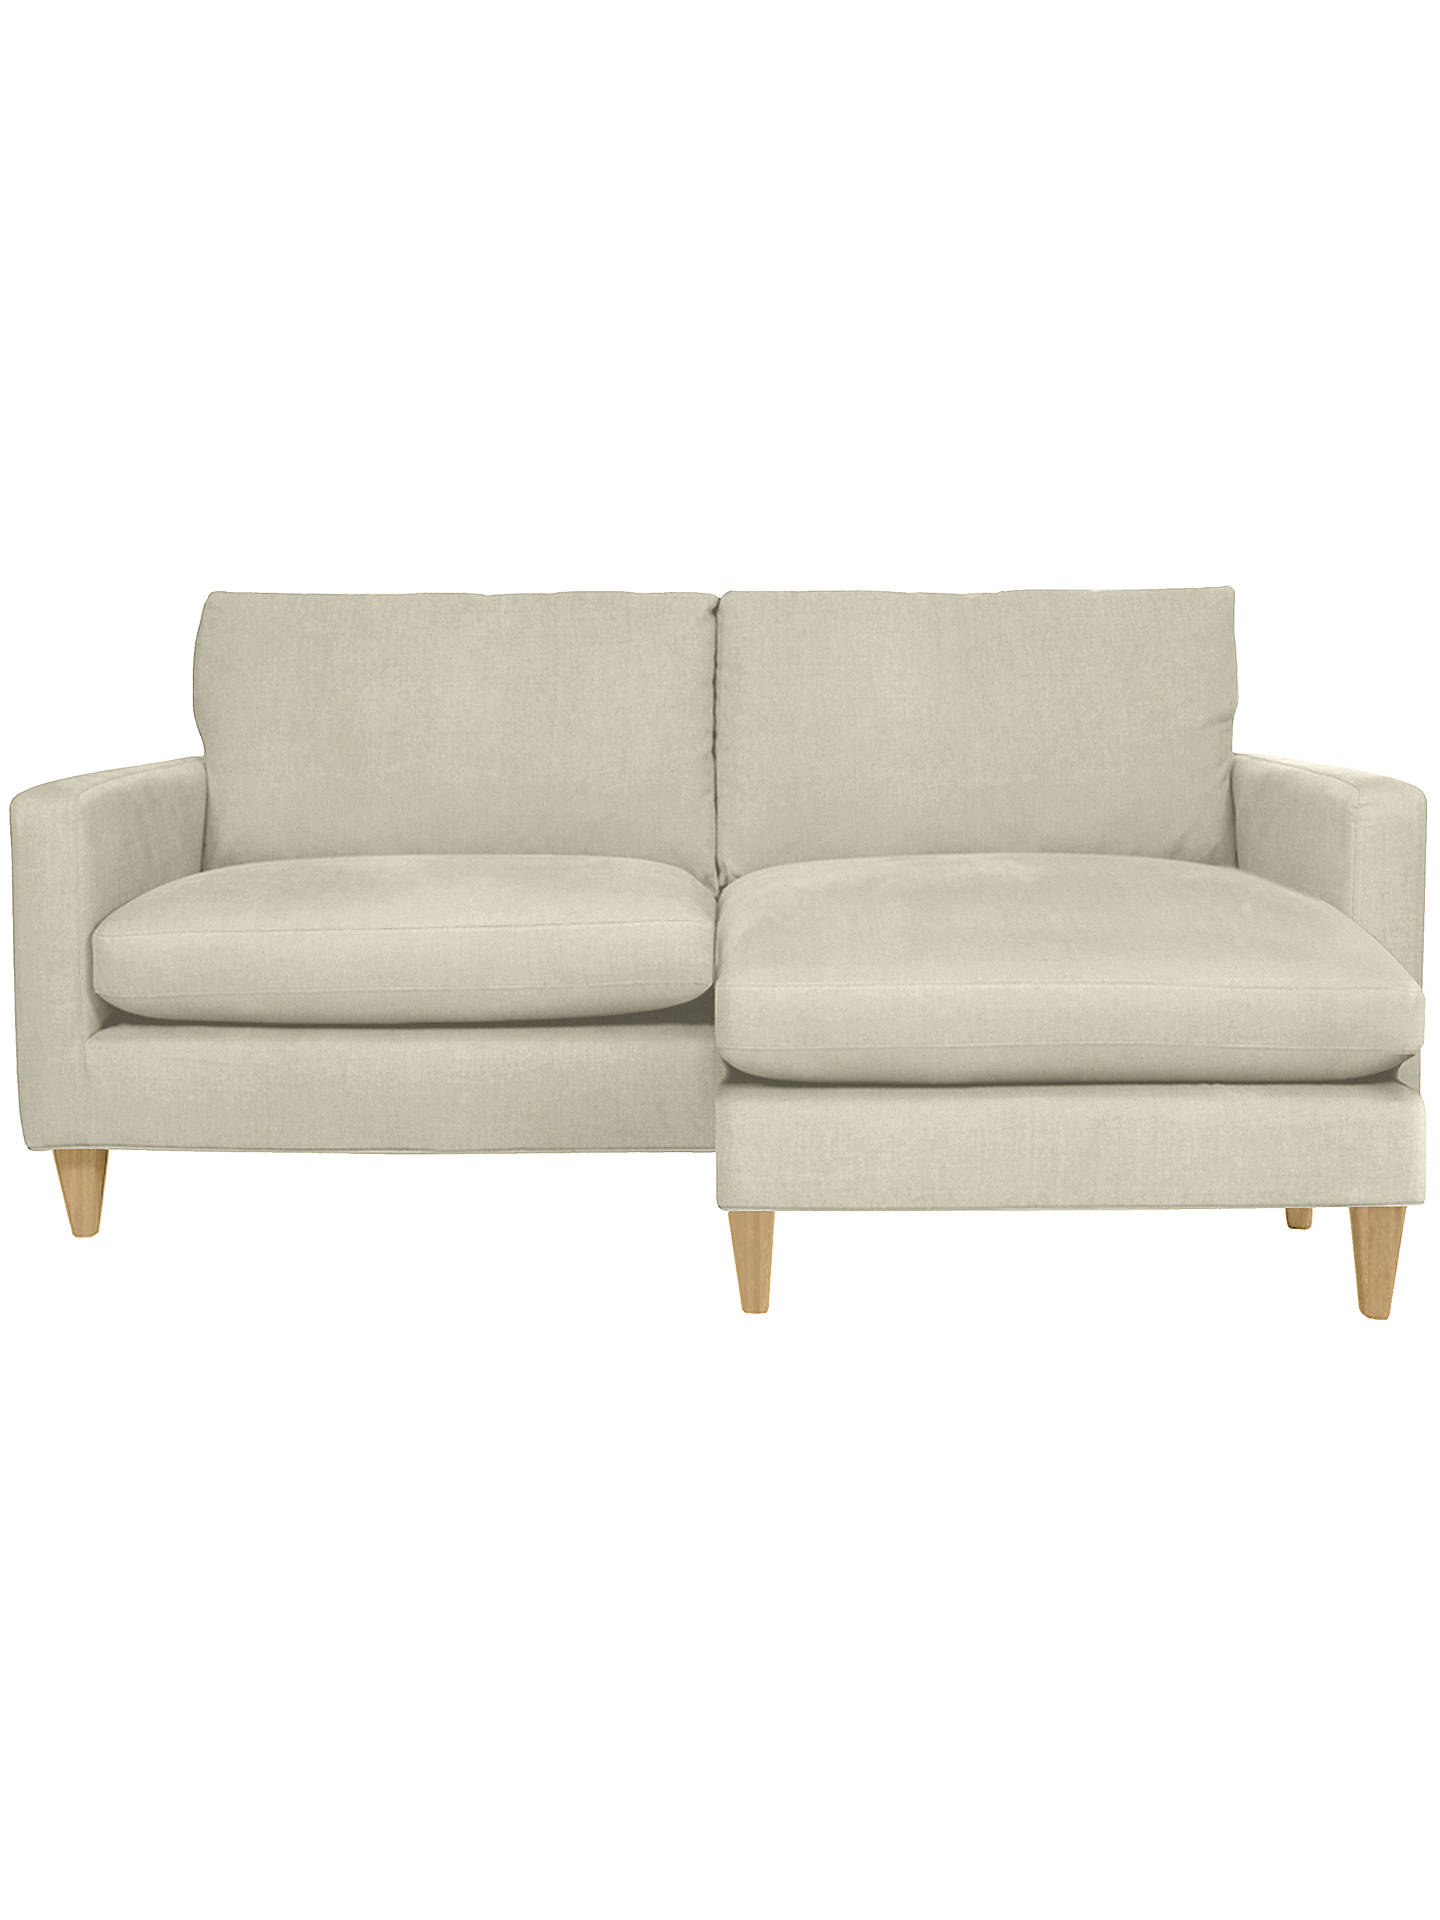 Groovy John Lewis Bailey Rhf Loose Cover Chaise End Sofa Price Alphanode Cool Chair Designs And Ideas Alphanodeonline